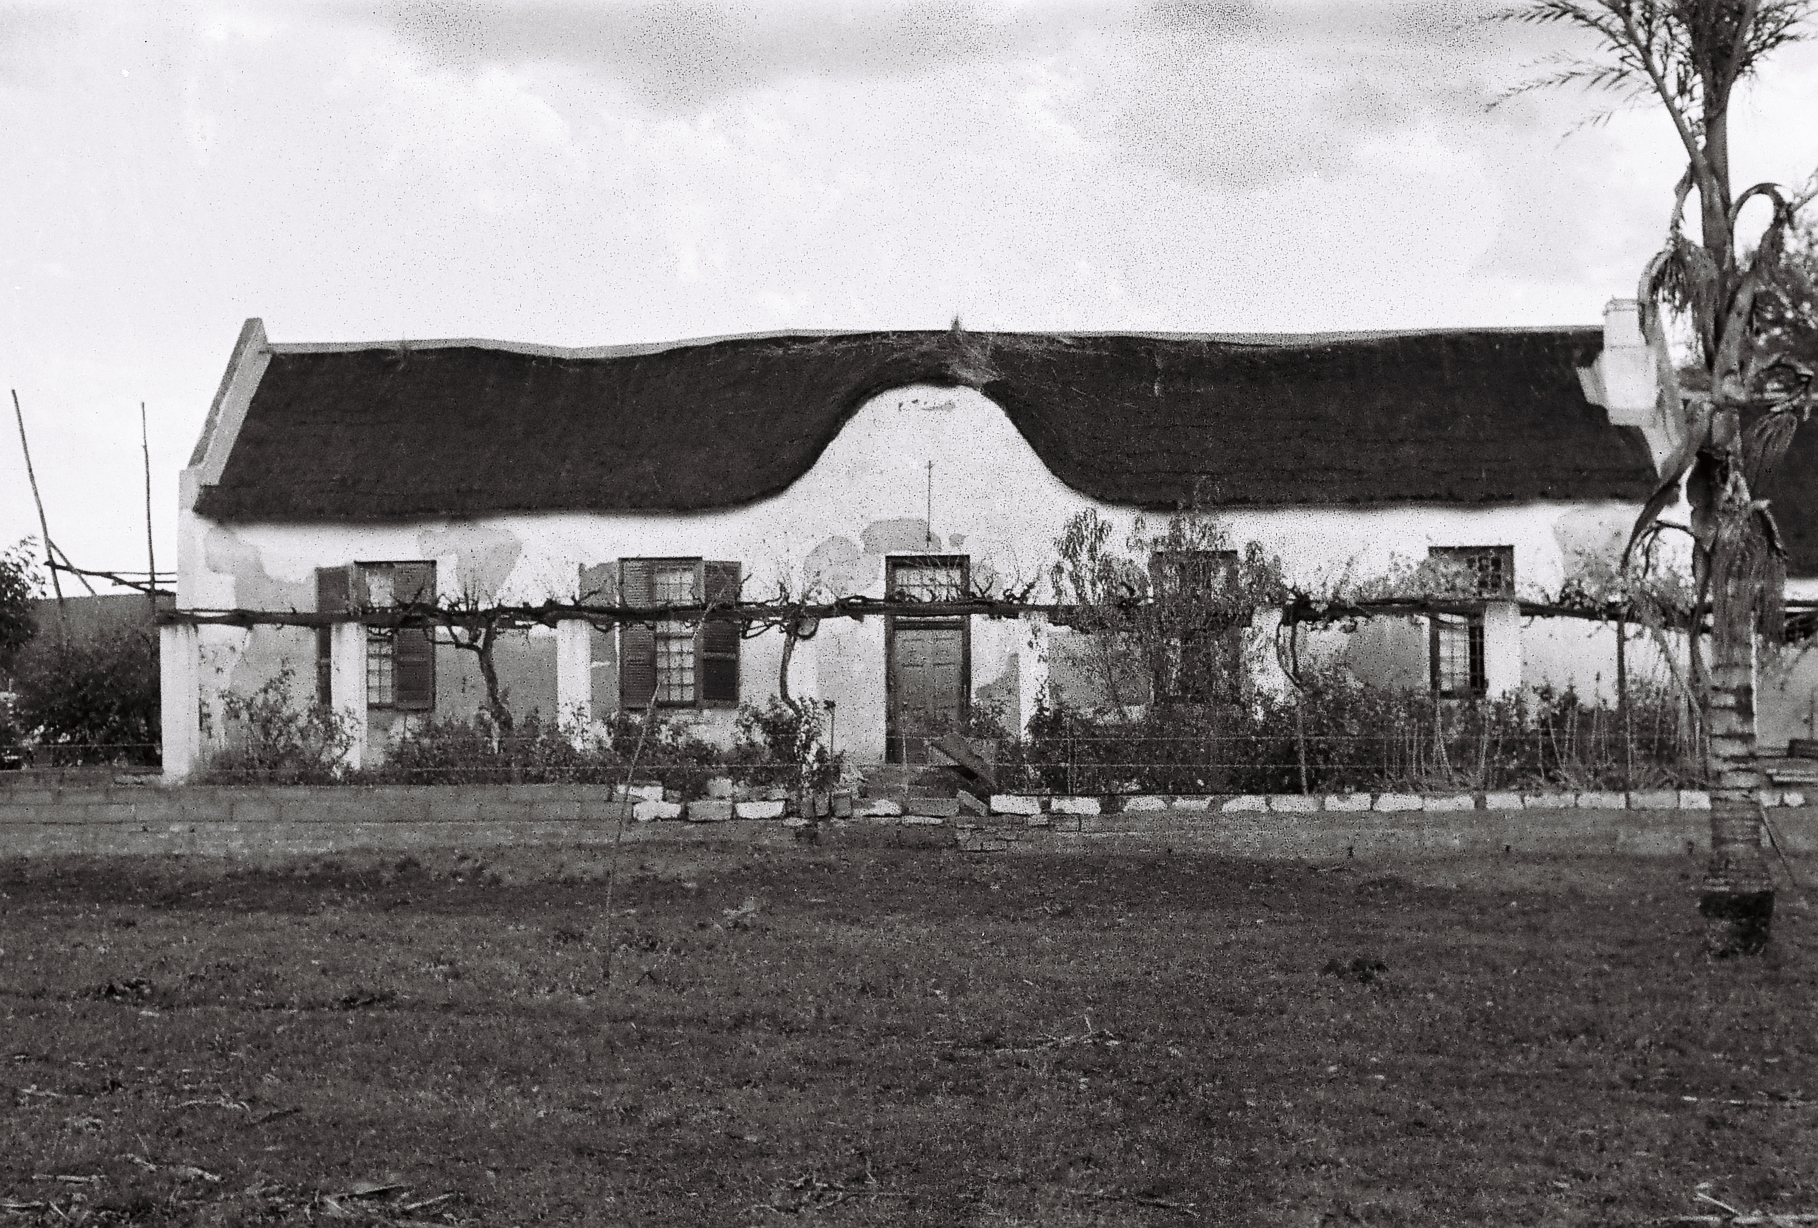 Capt Walter Synnot's House in Clanwilliam